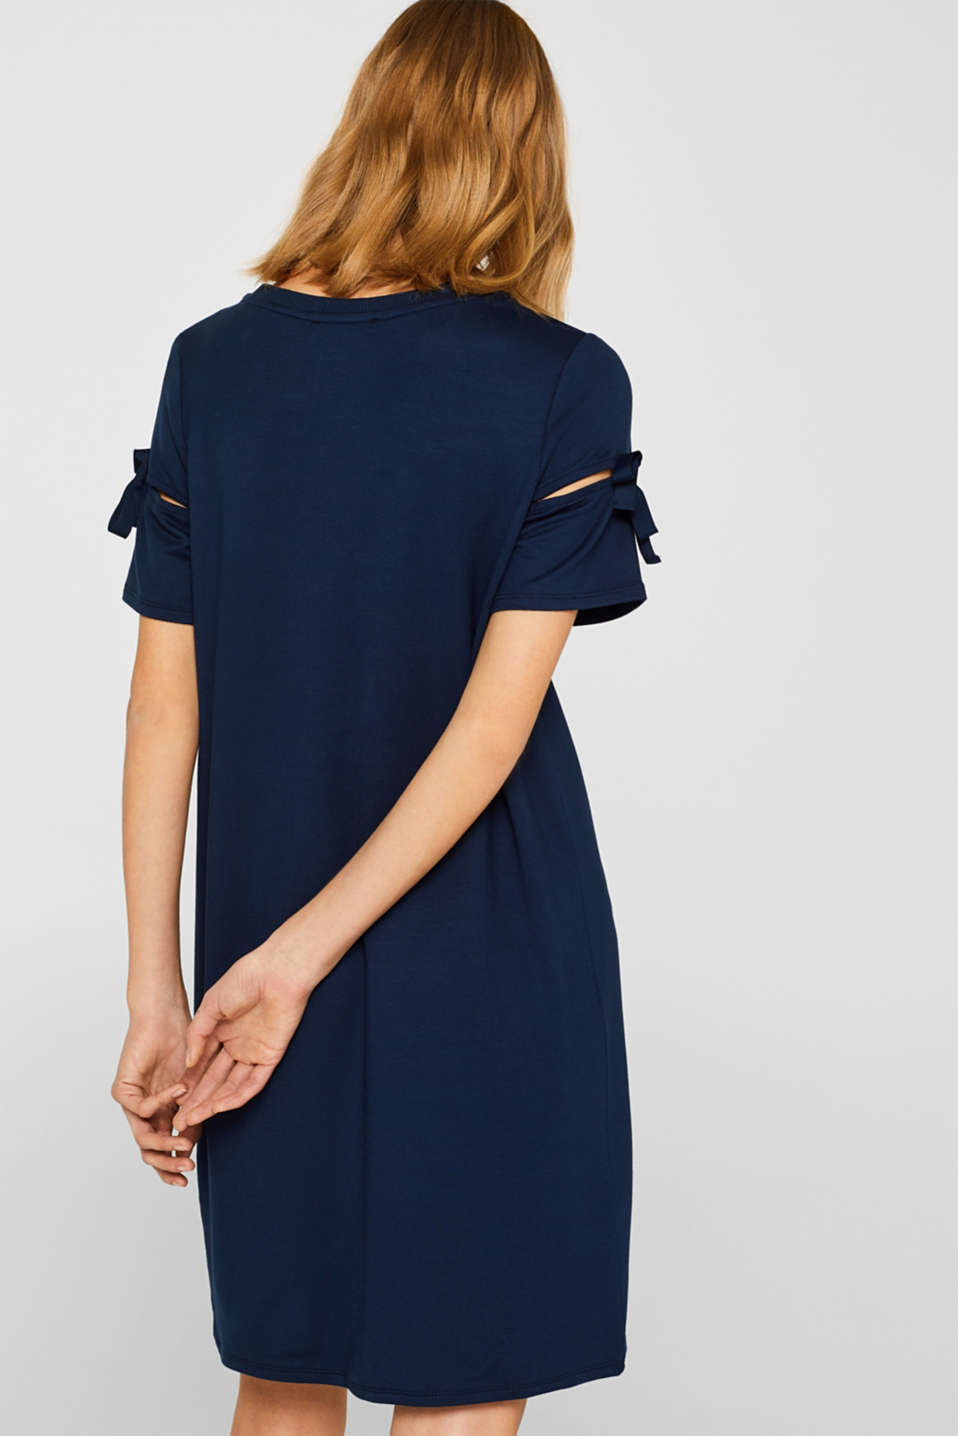 Jersey dress with knotted details, NAVY 2, detail image number 2